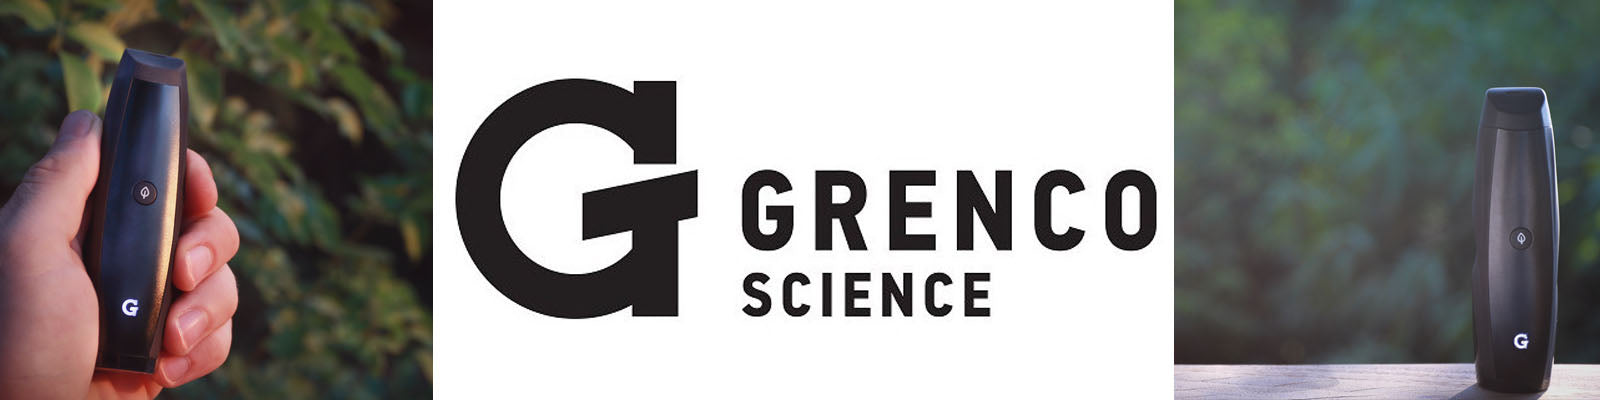 Grenco Gpen Vaporizers UK Authorized Seller  Free Shipping